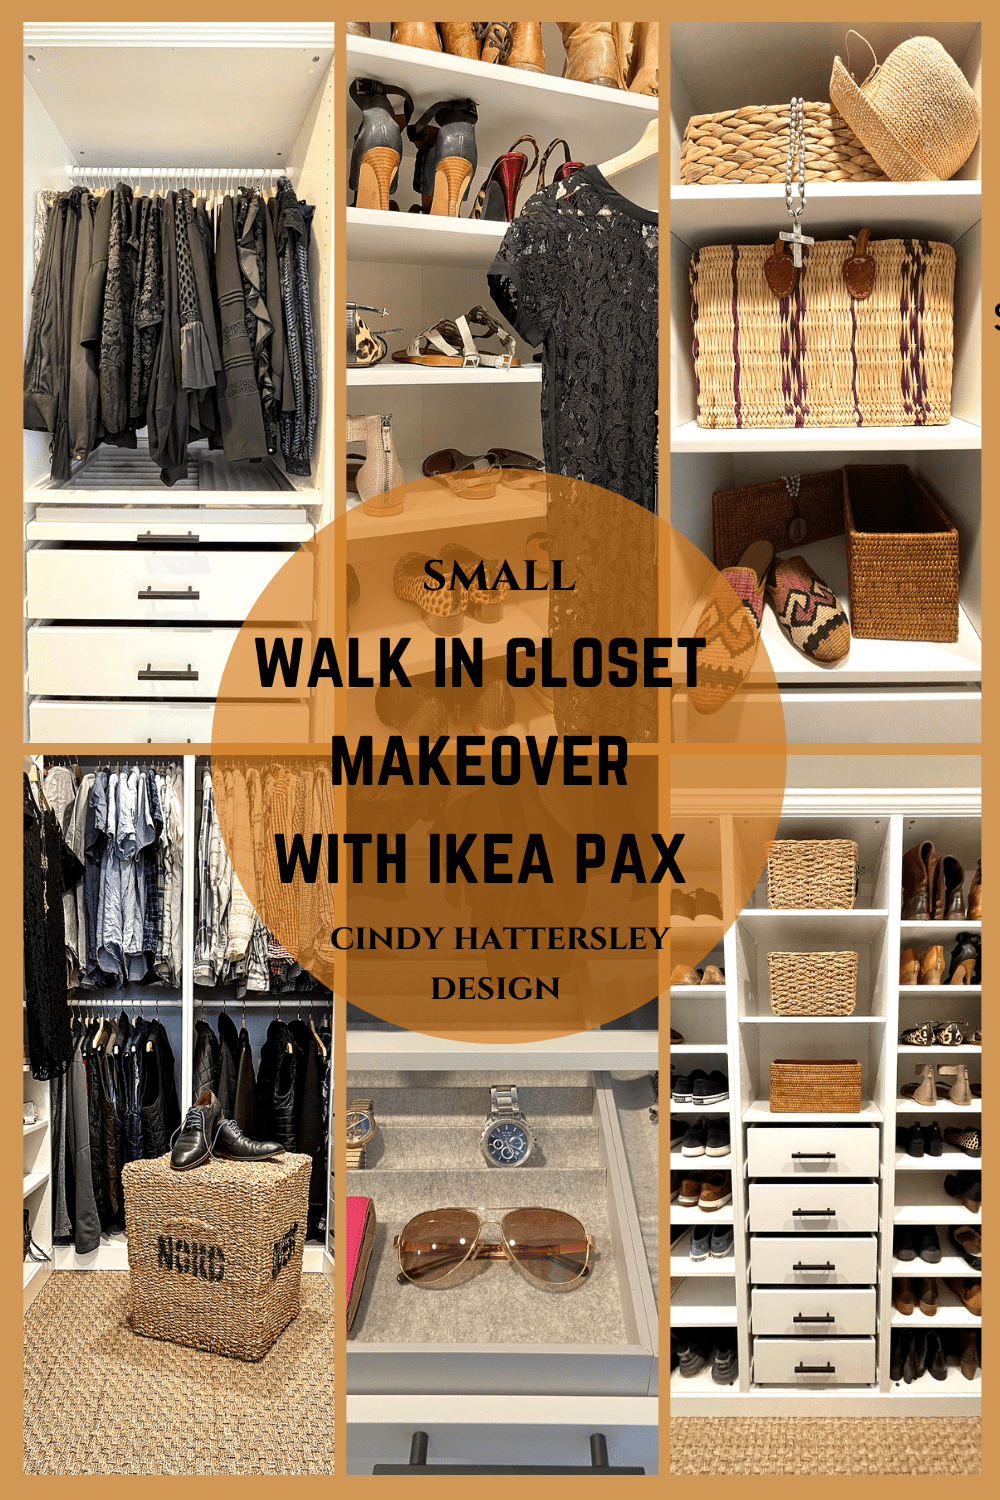 alk in closet makeover with ikea pax